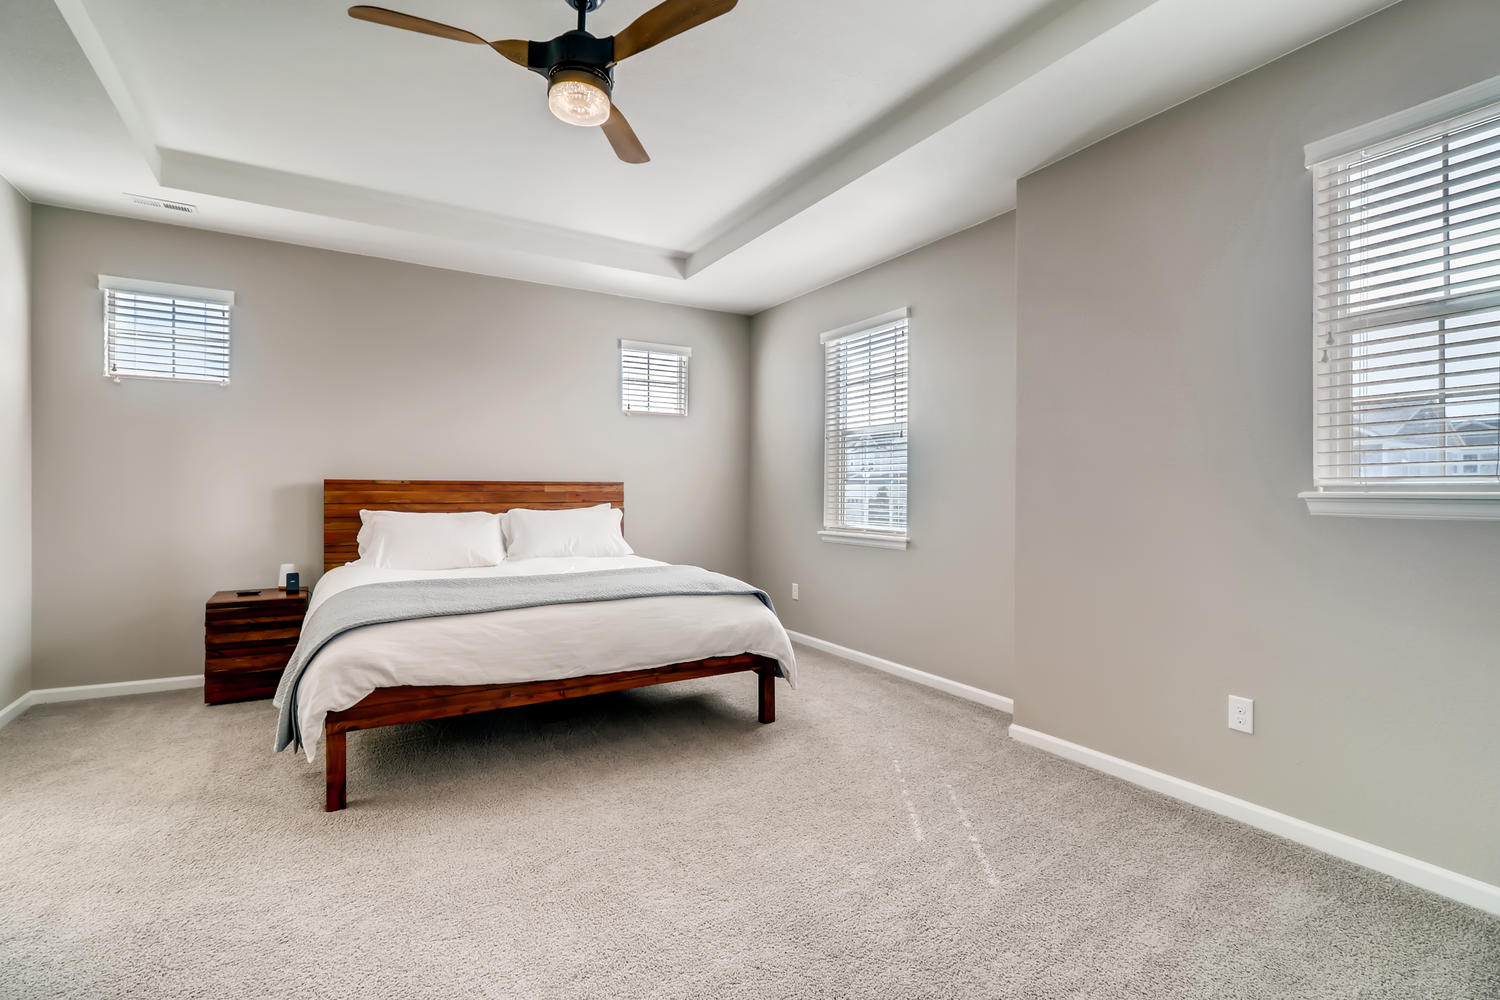 REAL ESTATE LISTING: 1029 Redbud Circle Master Bedroom